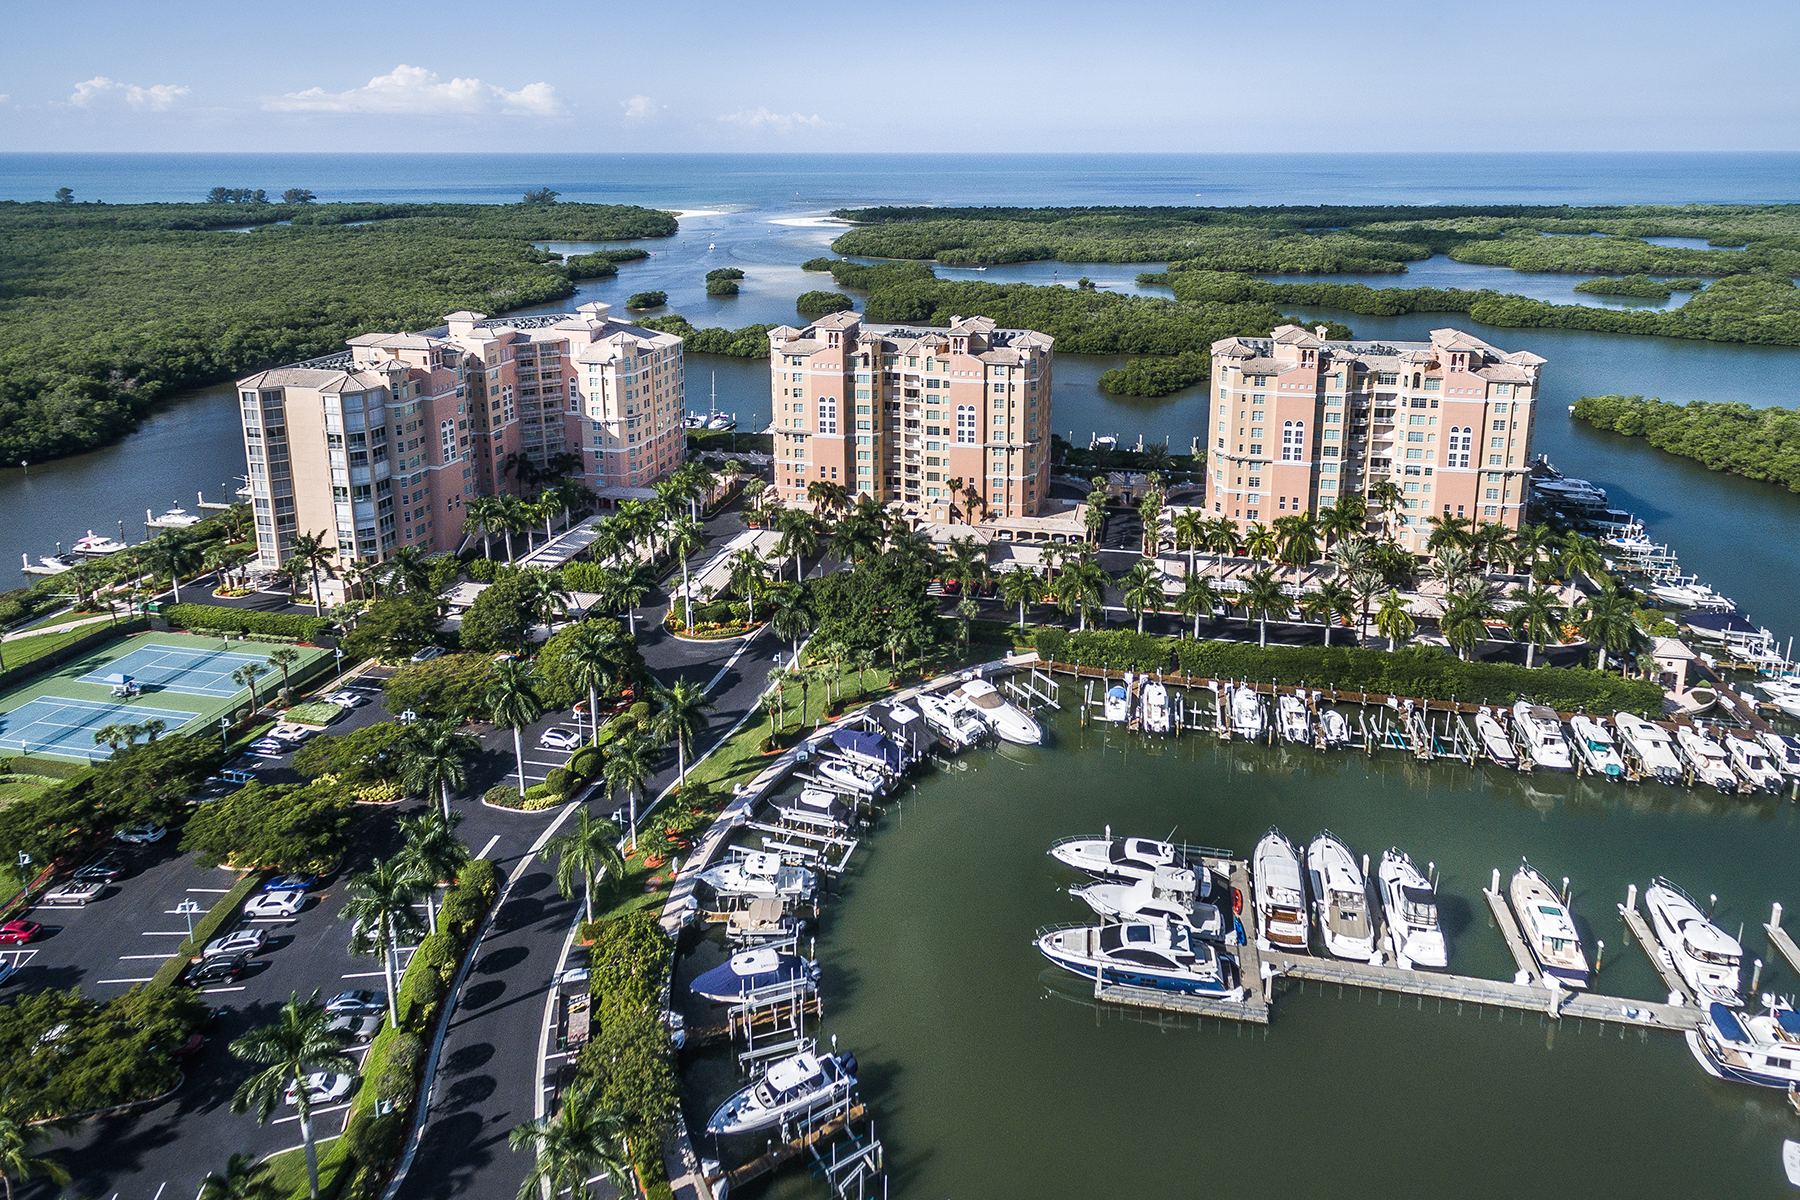 Condominium for Sale at PELICAN ISLE 435 Dockside Dr A-201, Naples, Florida 34110 United States